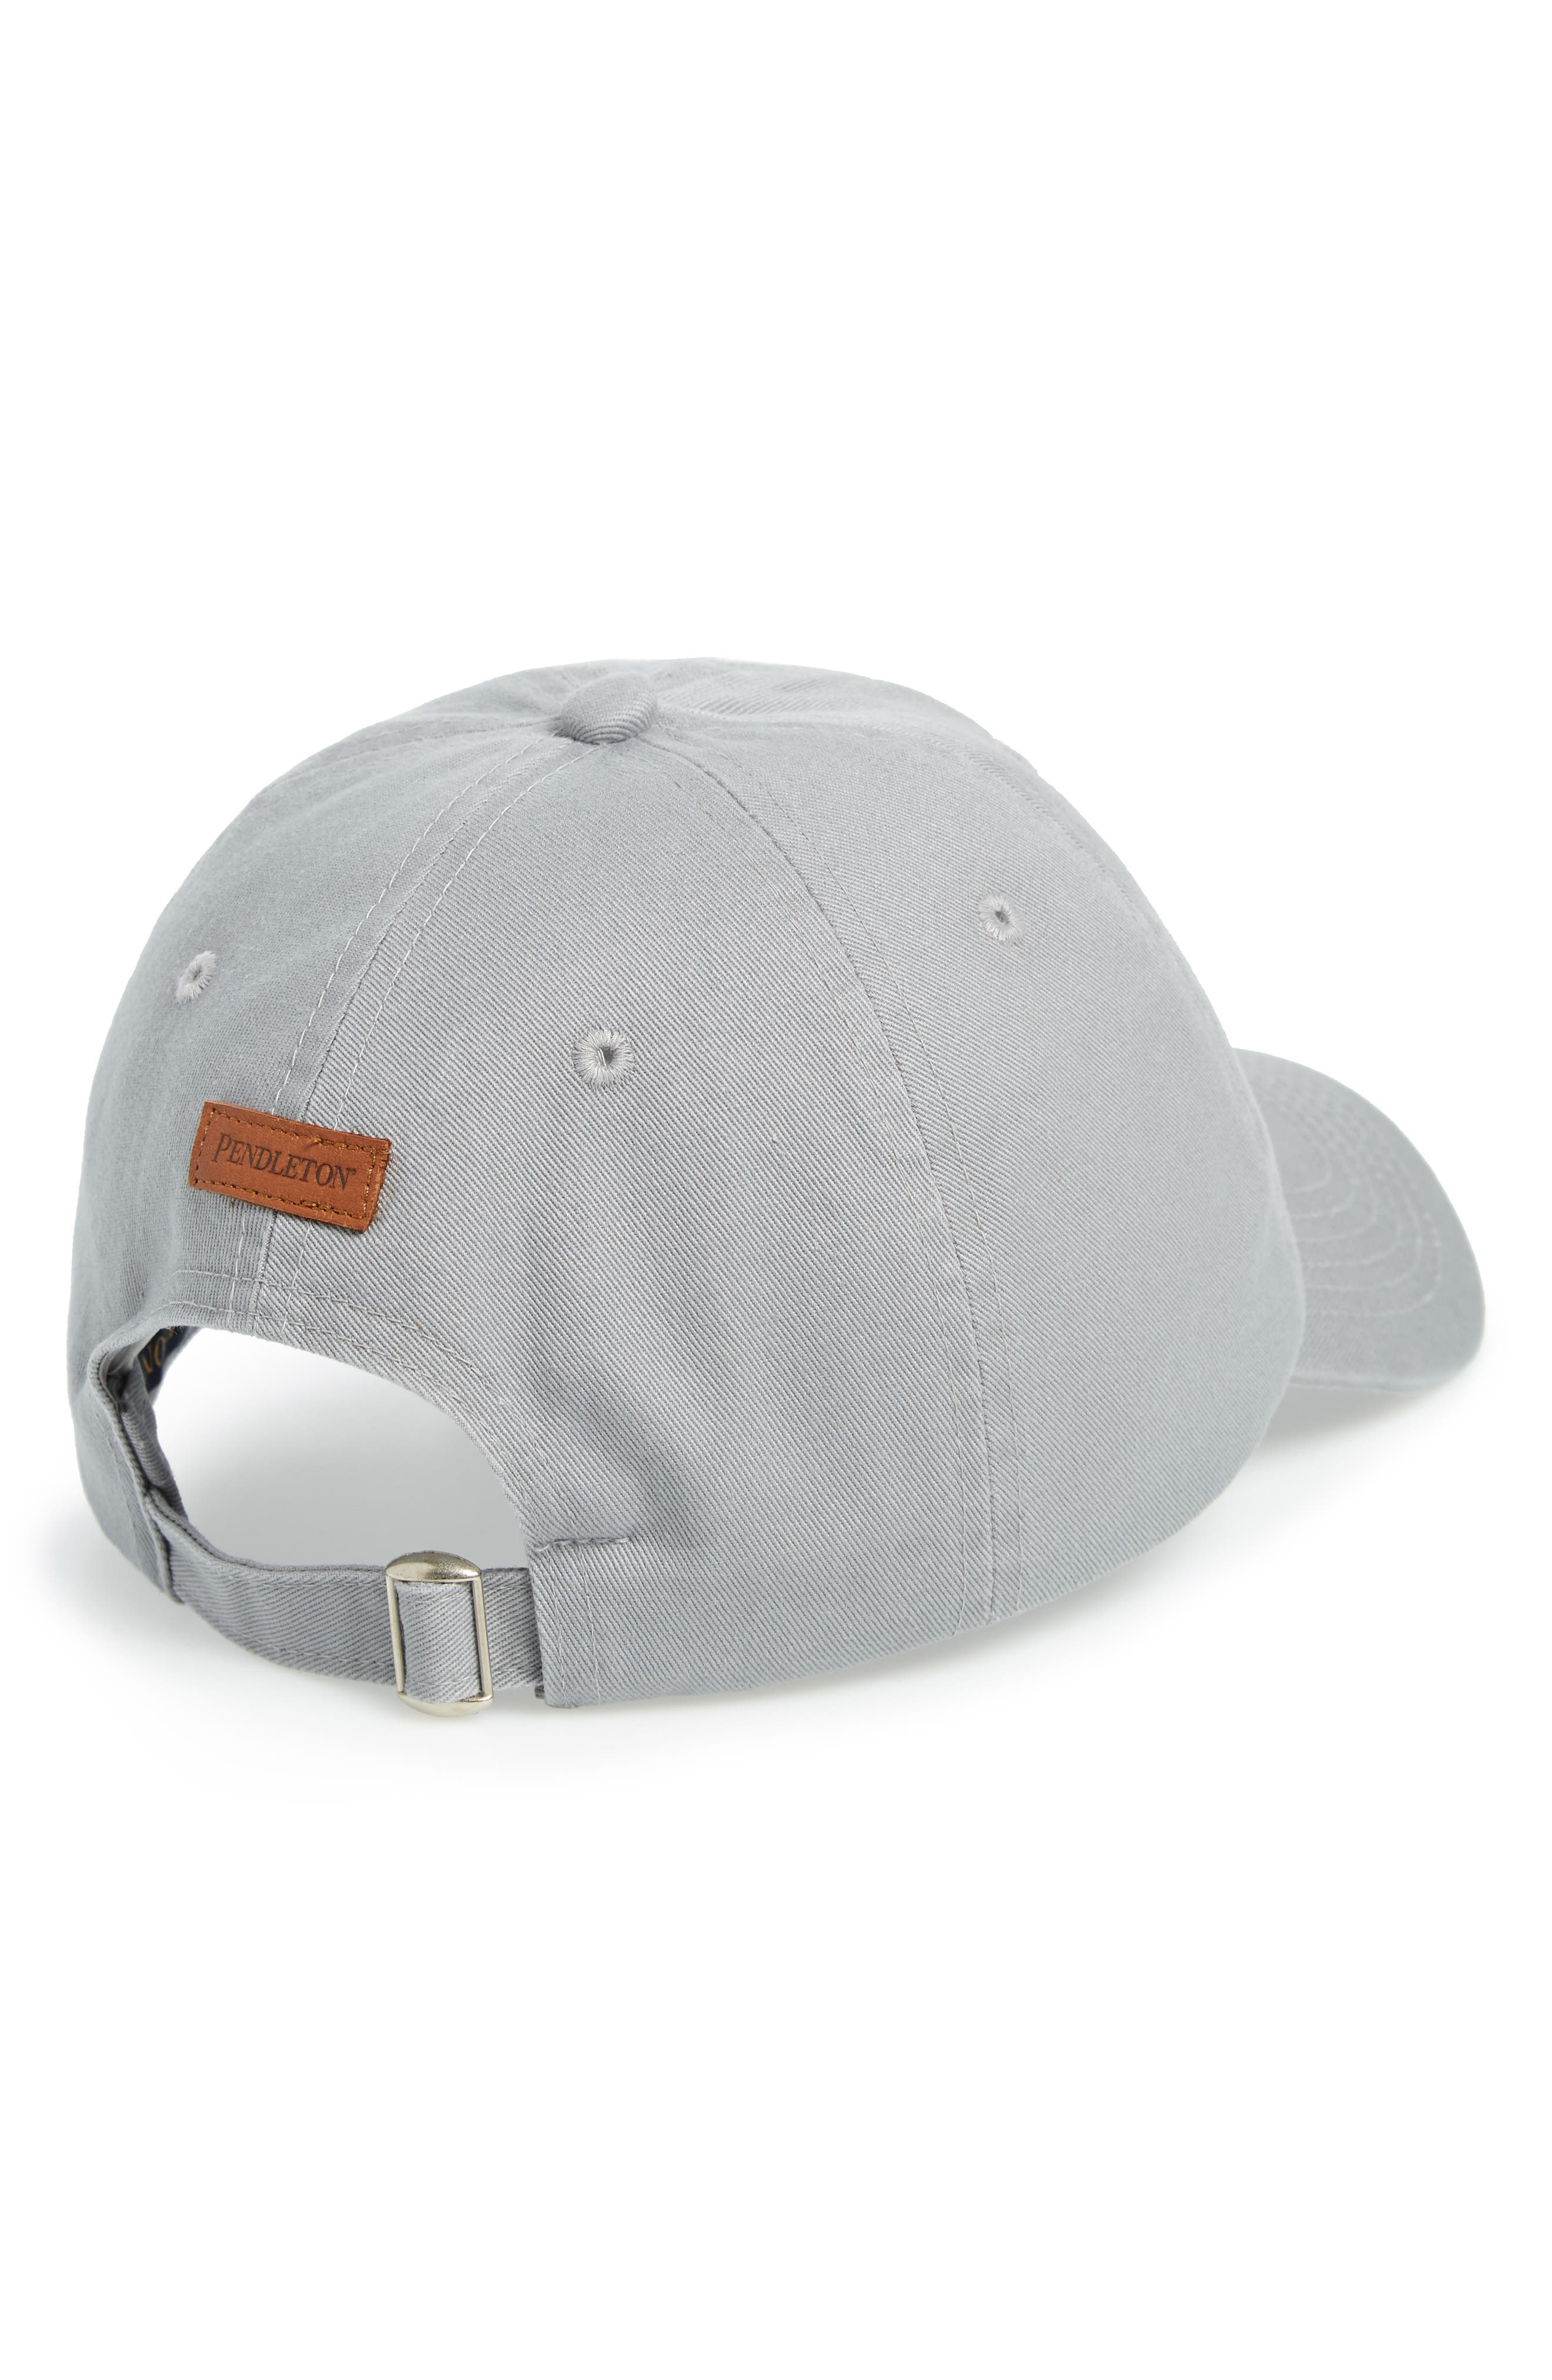 Chief Joseph Embroidered Cap,                             Alternate thumbnail 2, color,                             LIGHT GREY